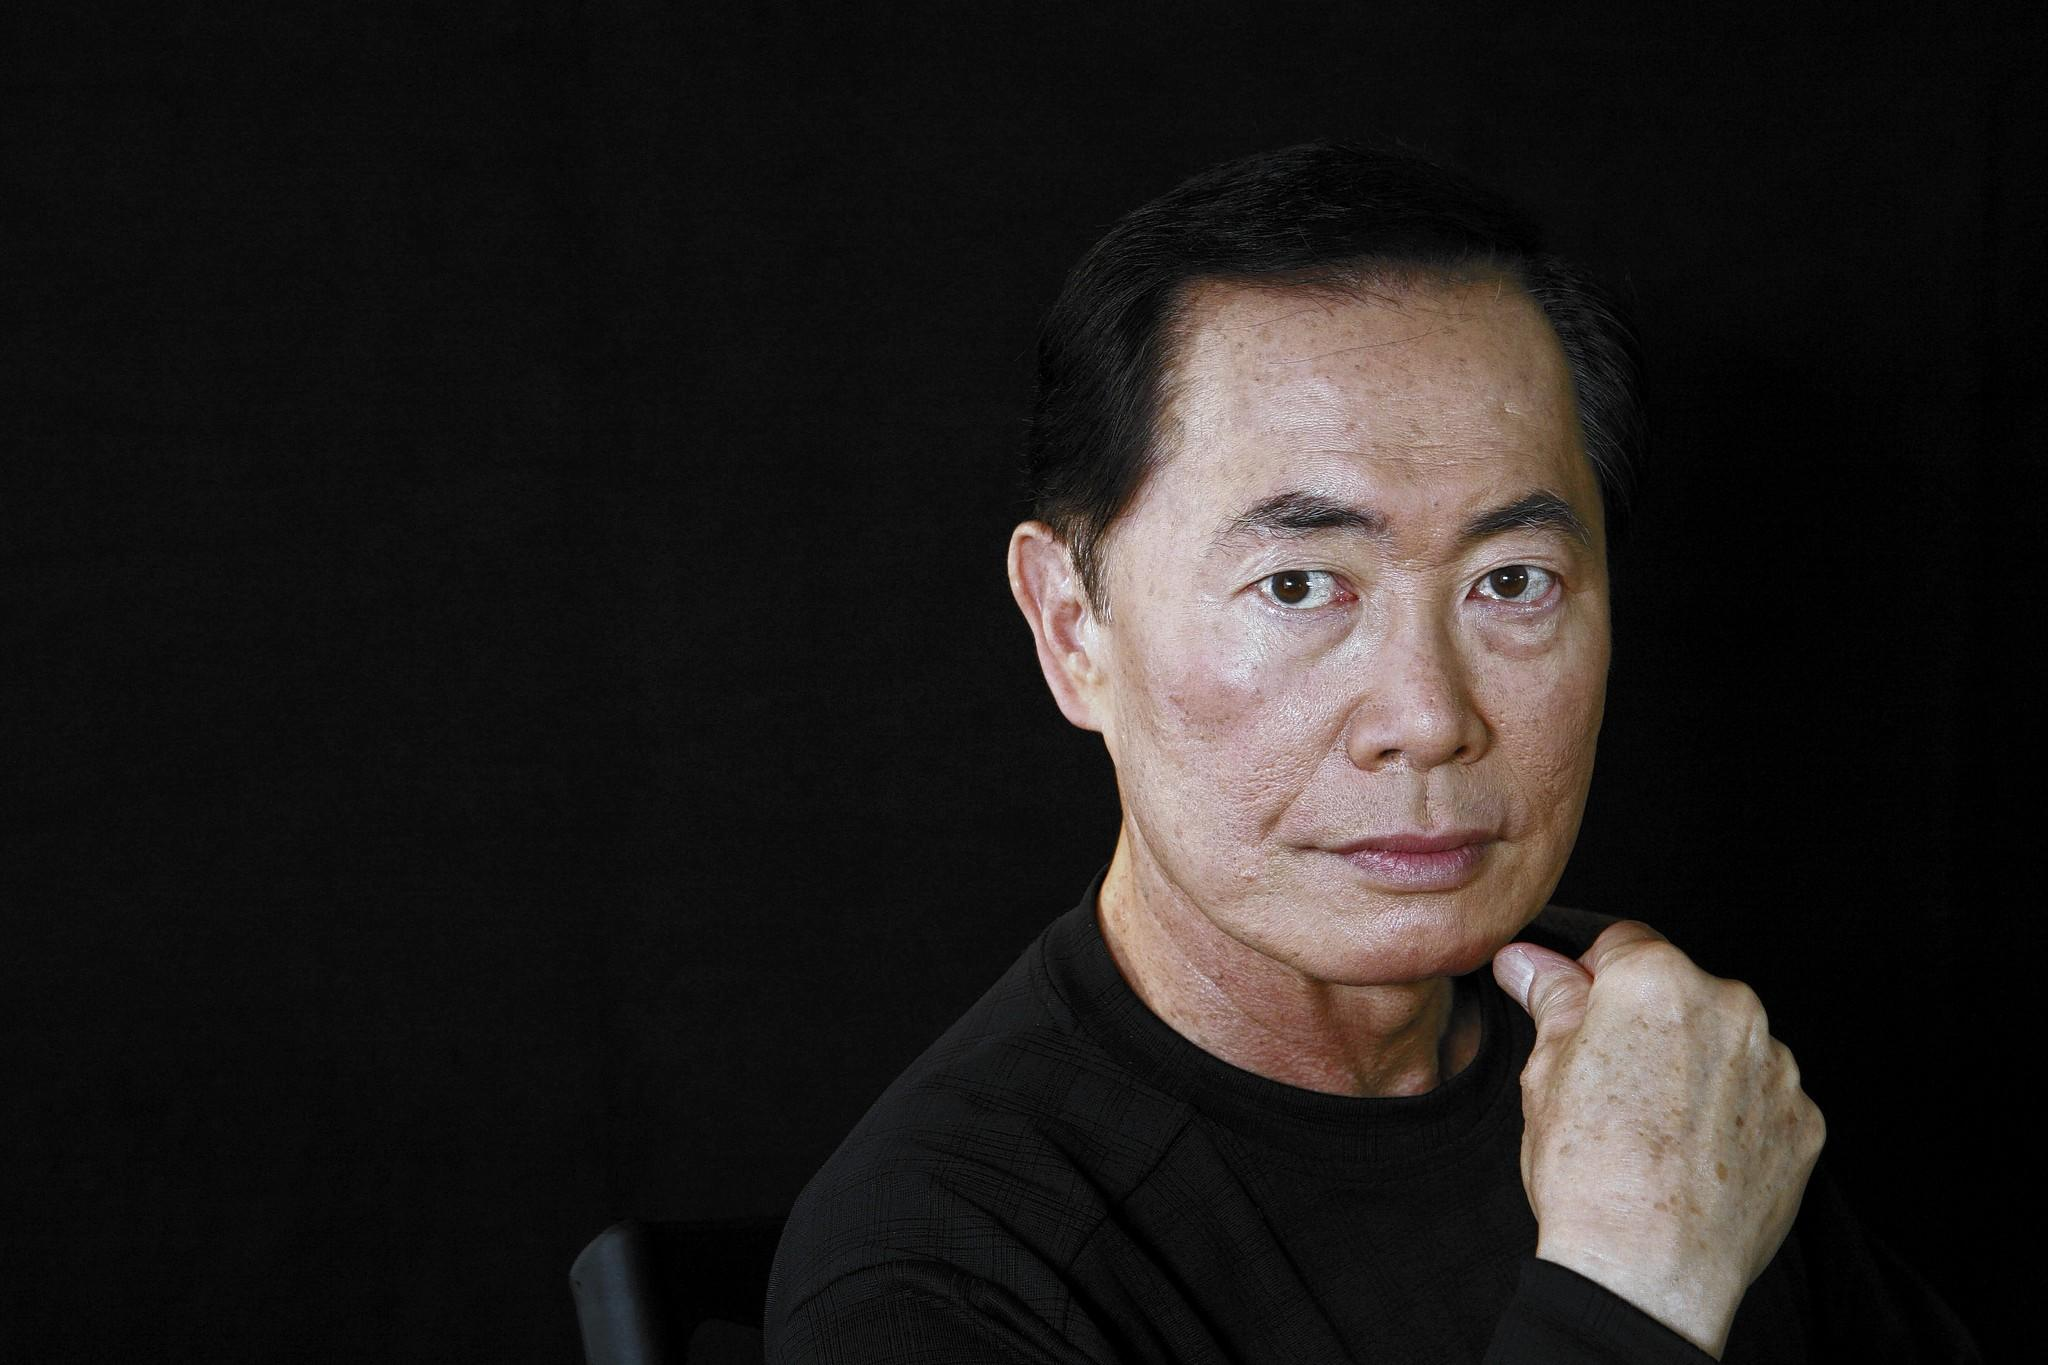 Star Trek' alum George Takei still stuns - tribunedigital-baltimoresun